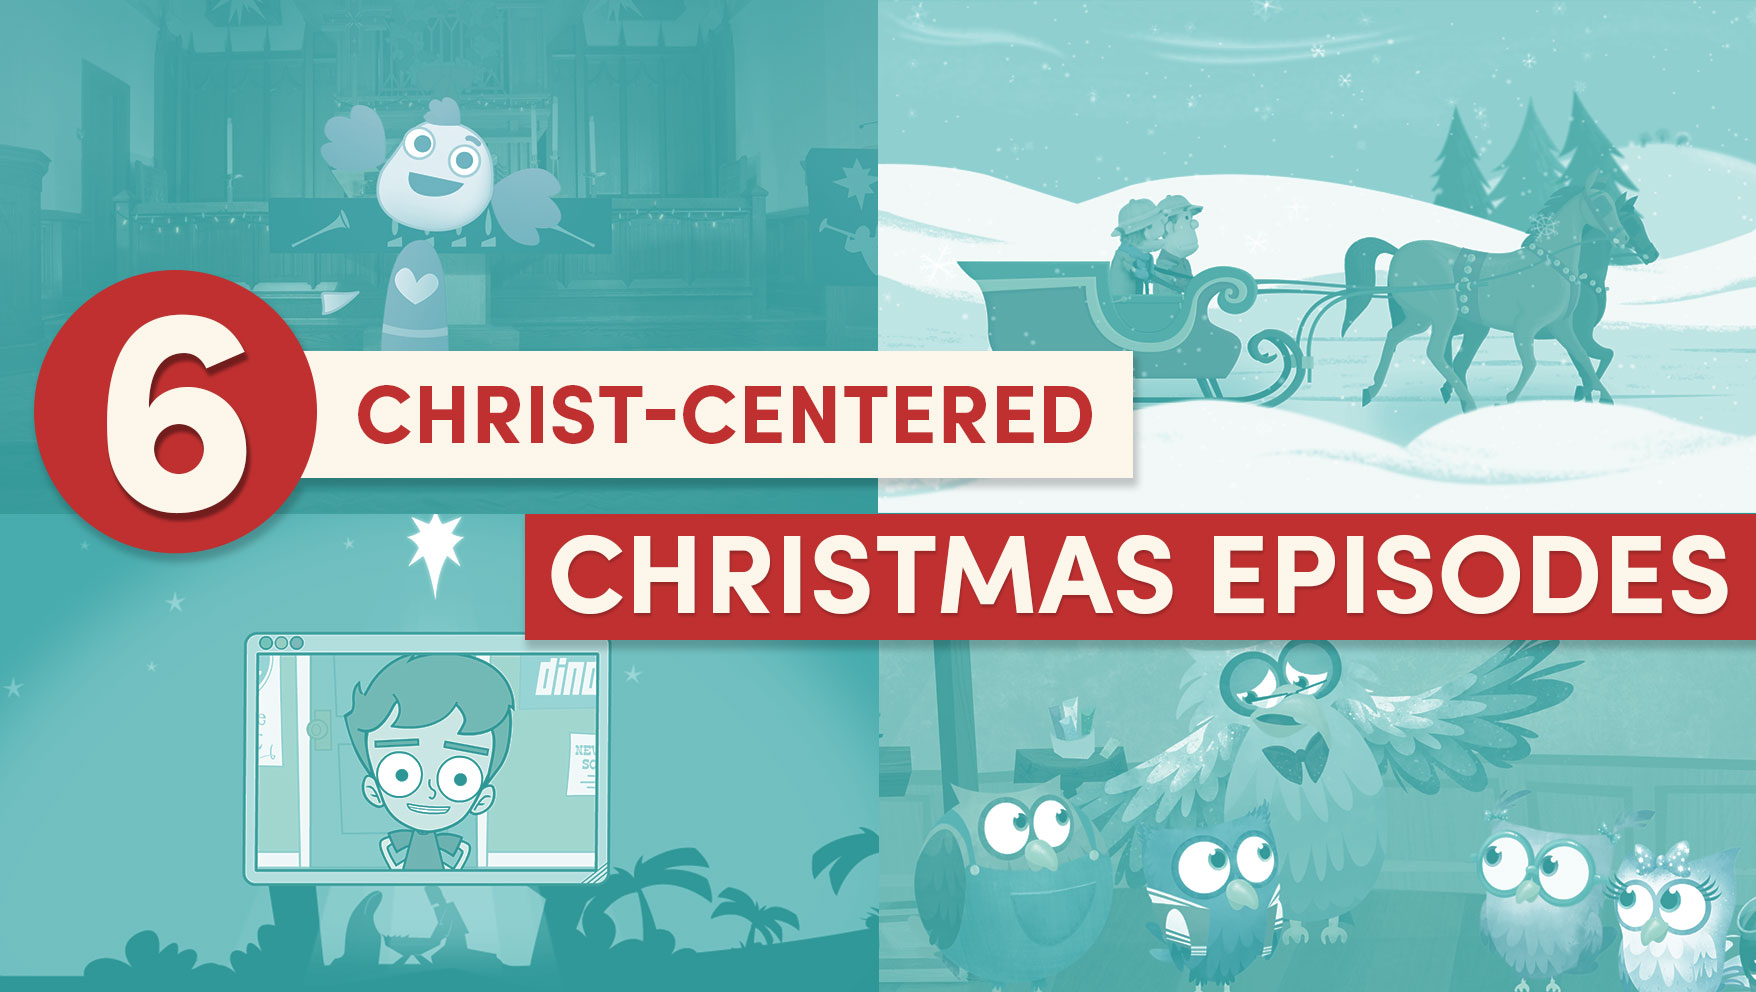 6 Christ-Centered Christmas Episodes